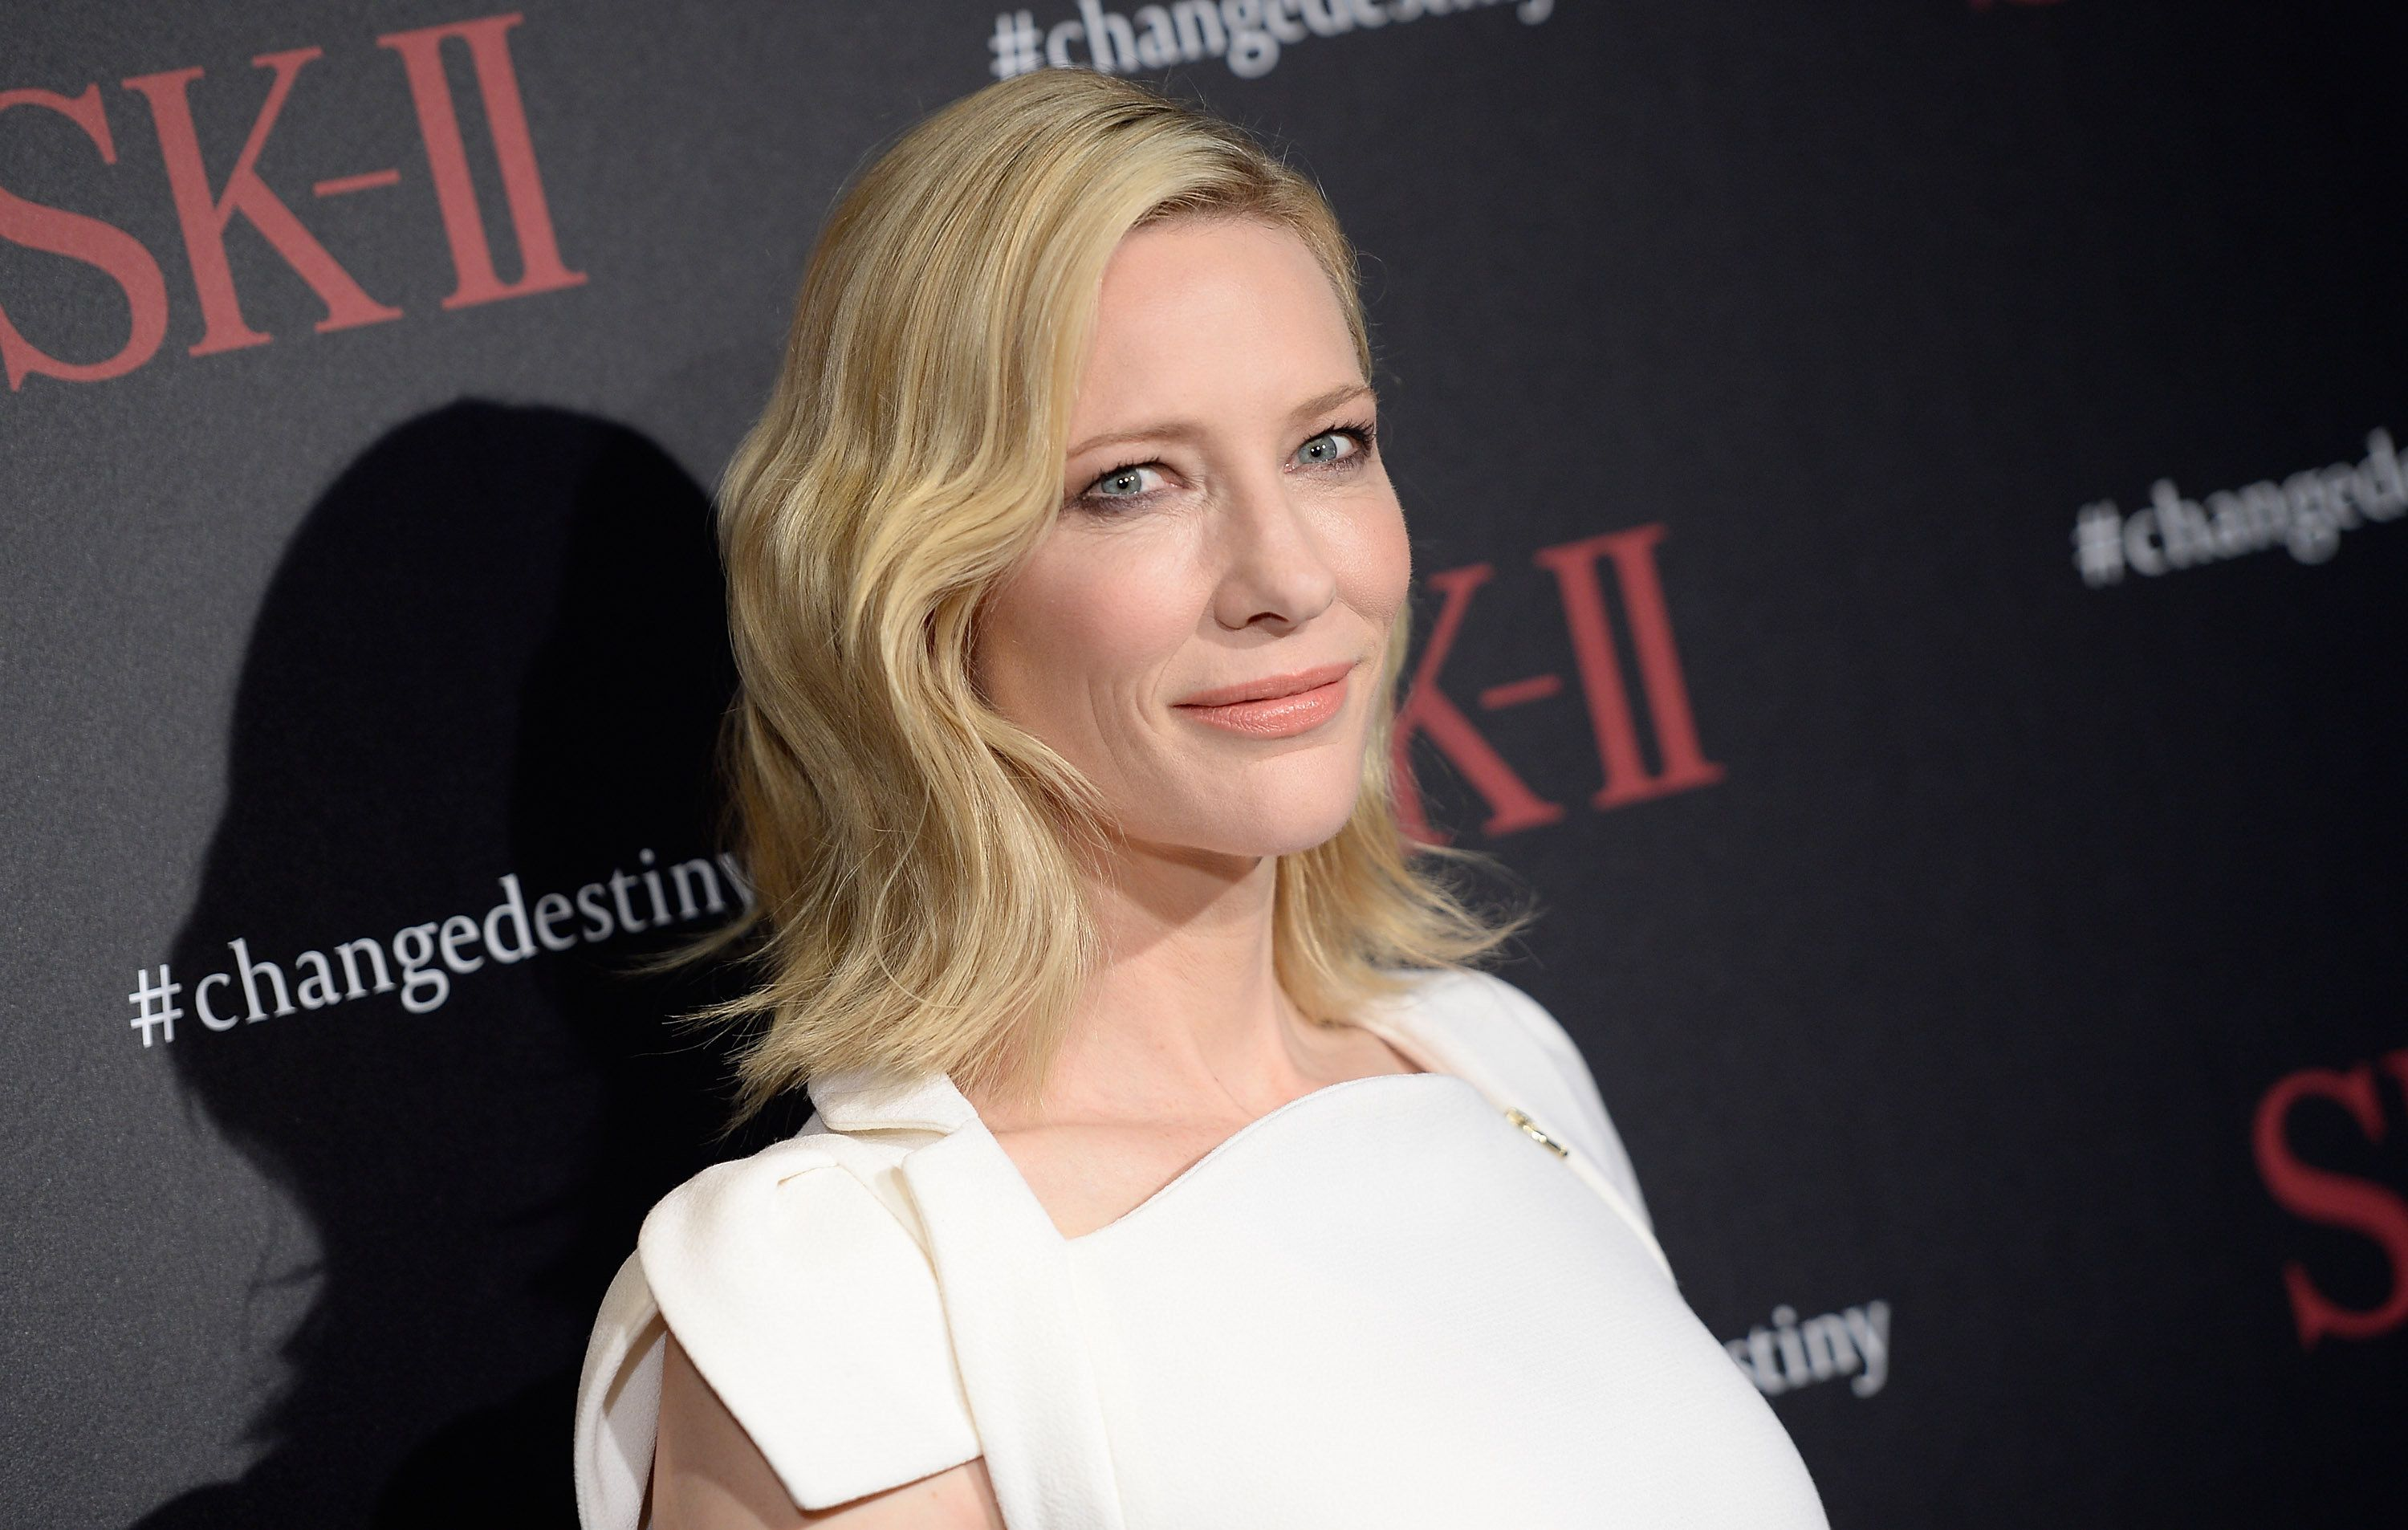 LOS ANGELES, CA - FEBRUARY 26:  Actress Cate Blanchett attends the SK-II #ChangeDestiny Forum at Andaz Hotel on February 26, 2016 in Los Angeles, California.  (Photo by Angela Weiss/Getty Images)